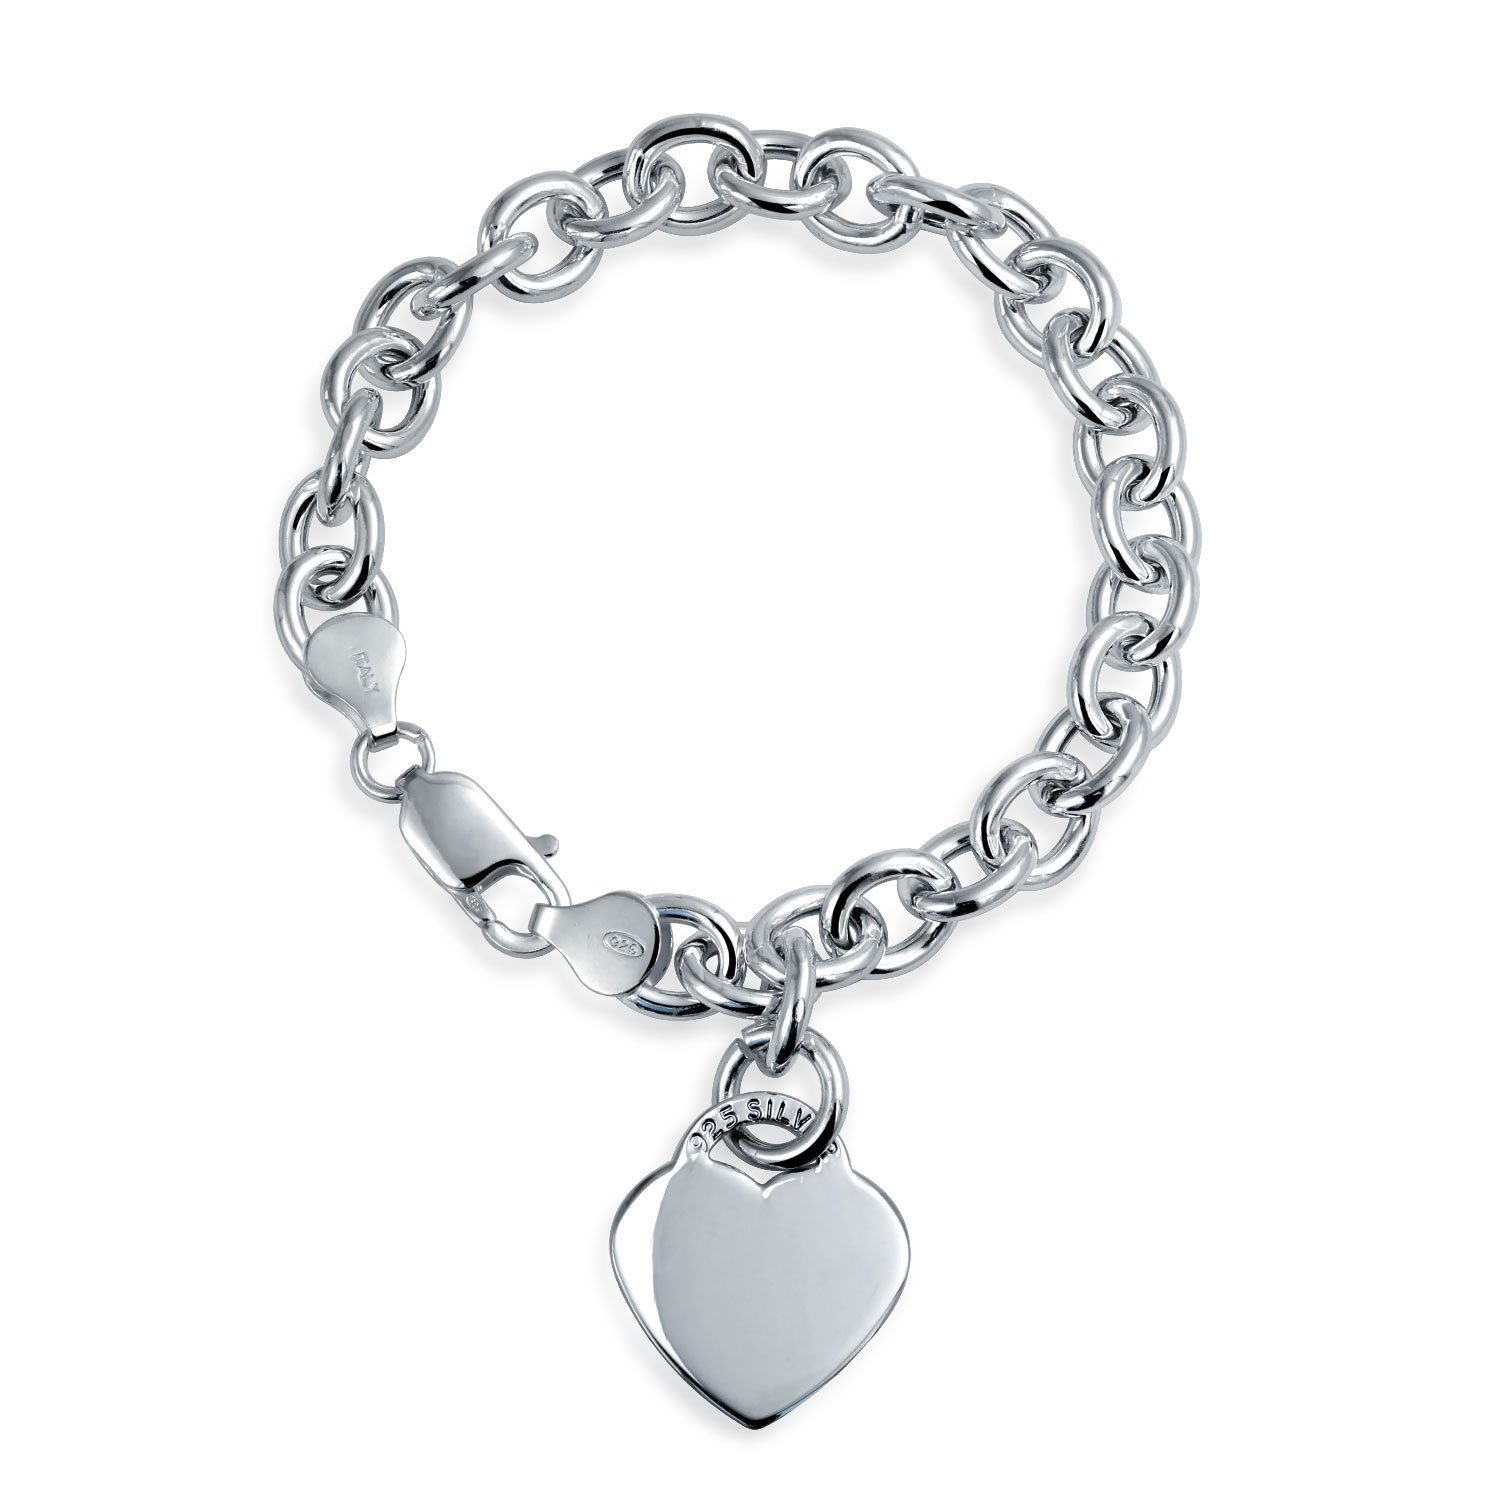 silver bracelet appl locket charm jb jewelry bling pave lock key and sterling az cz heart